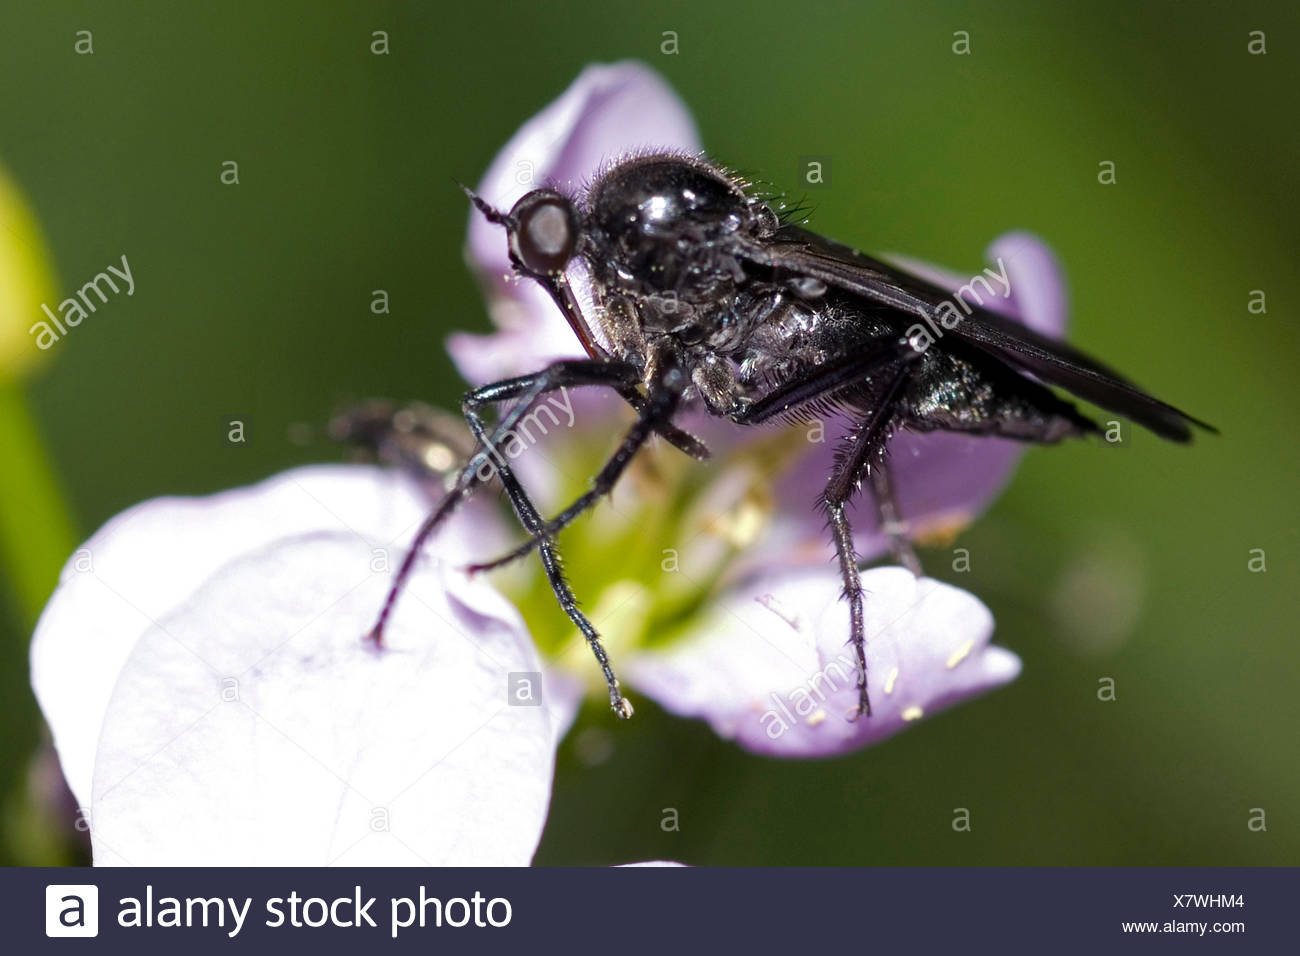 Black Dance Fly (Empis ciliata), on lilac flower, Germany - Stock Image